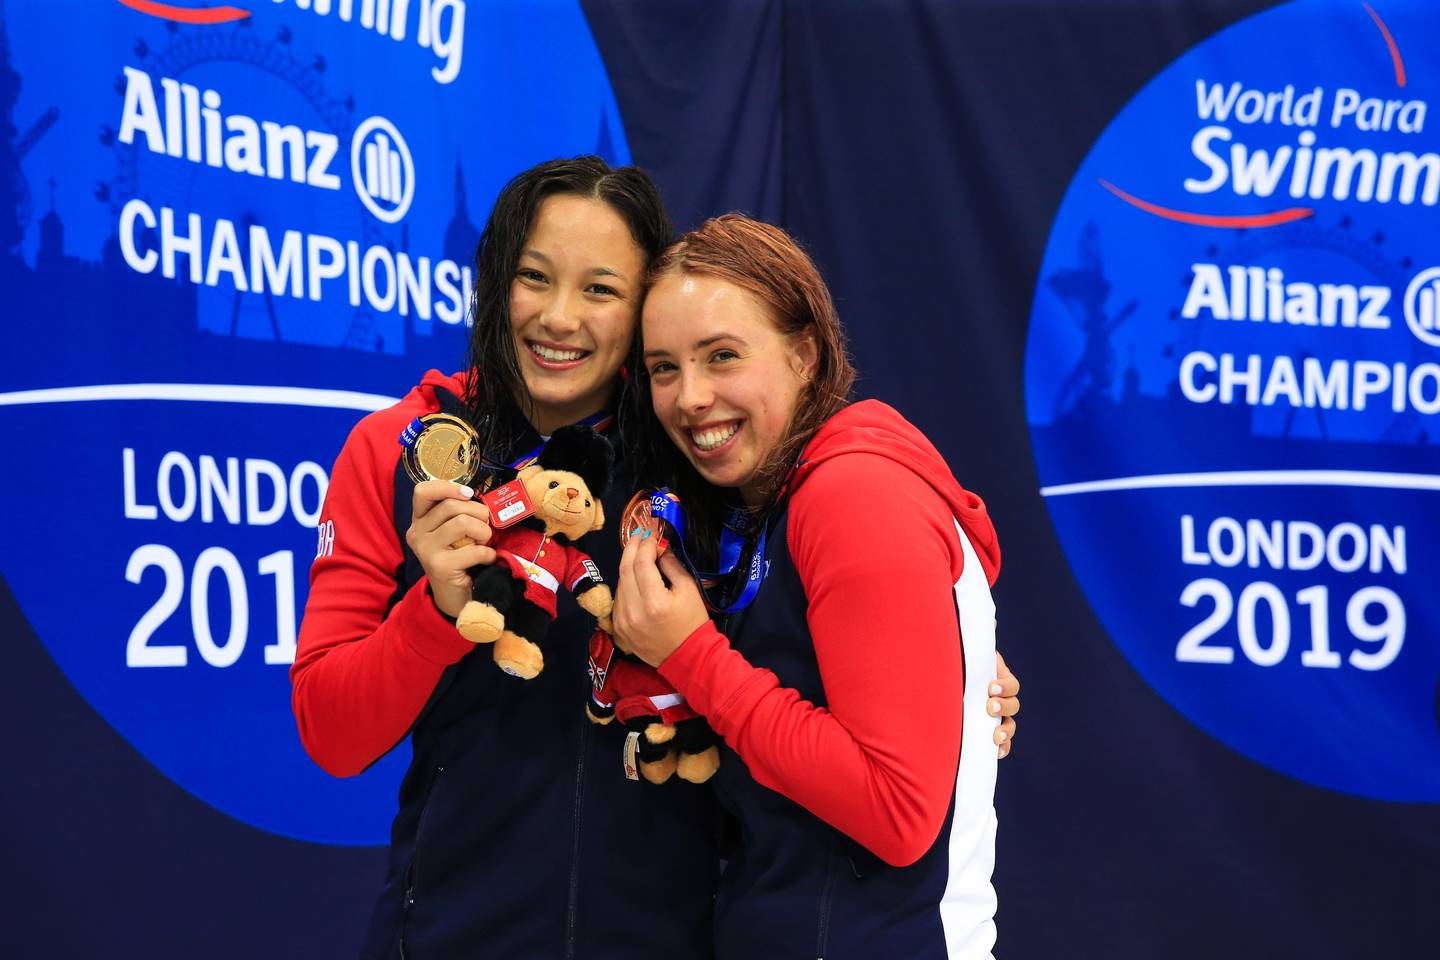 Alice Taii and Megan Richter celebrating